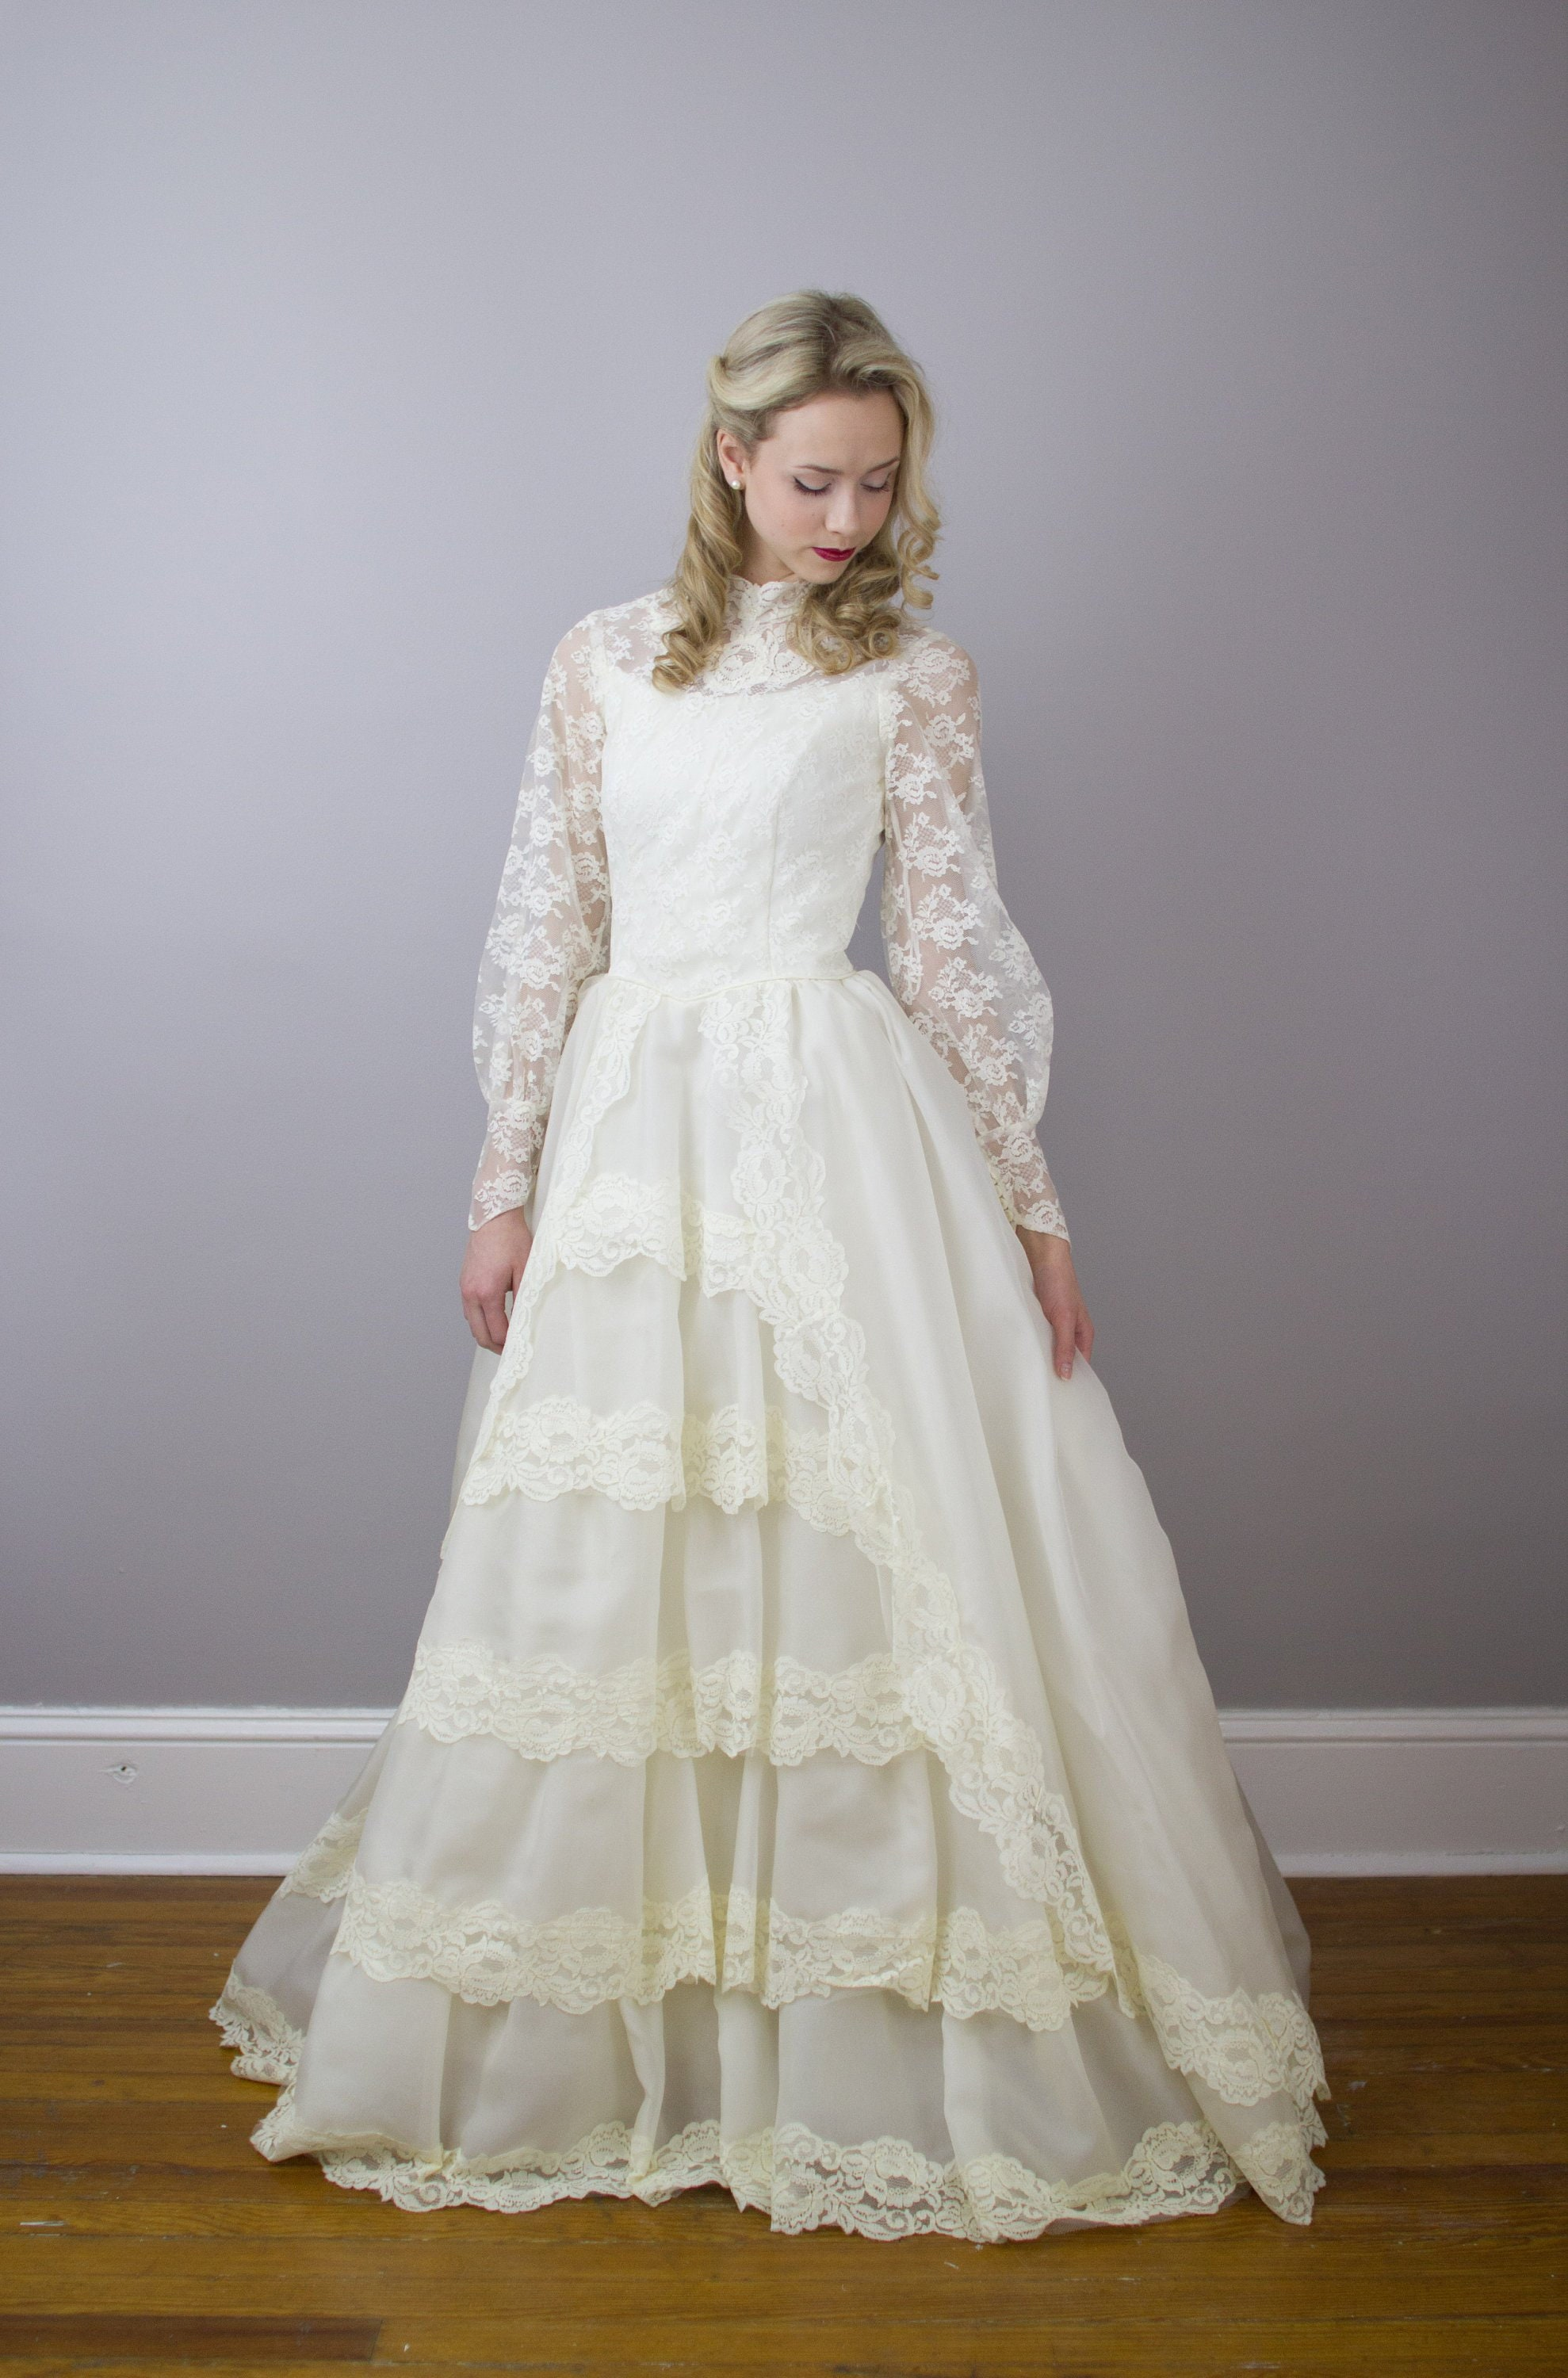 Vintage 20's princess style tiered wedding gown /   Etsy